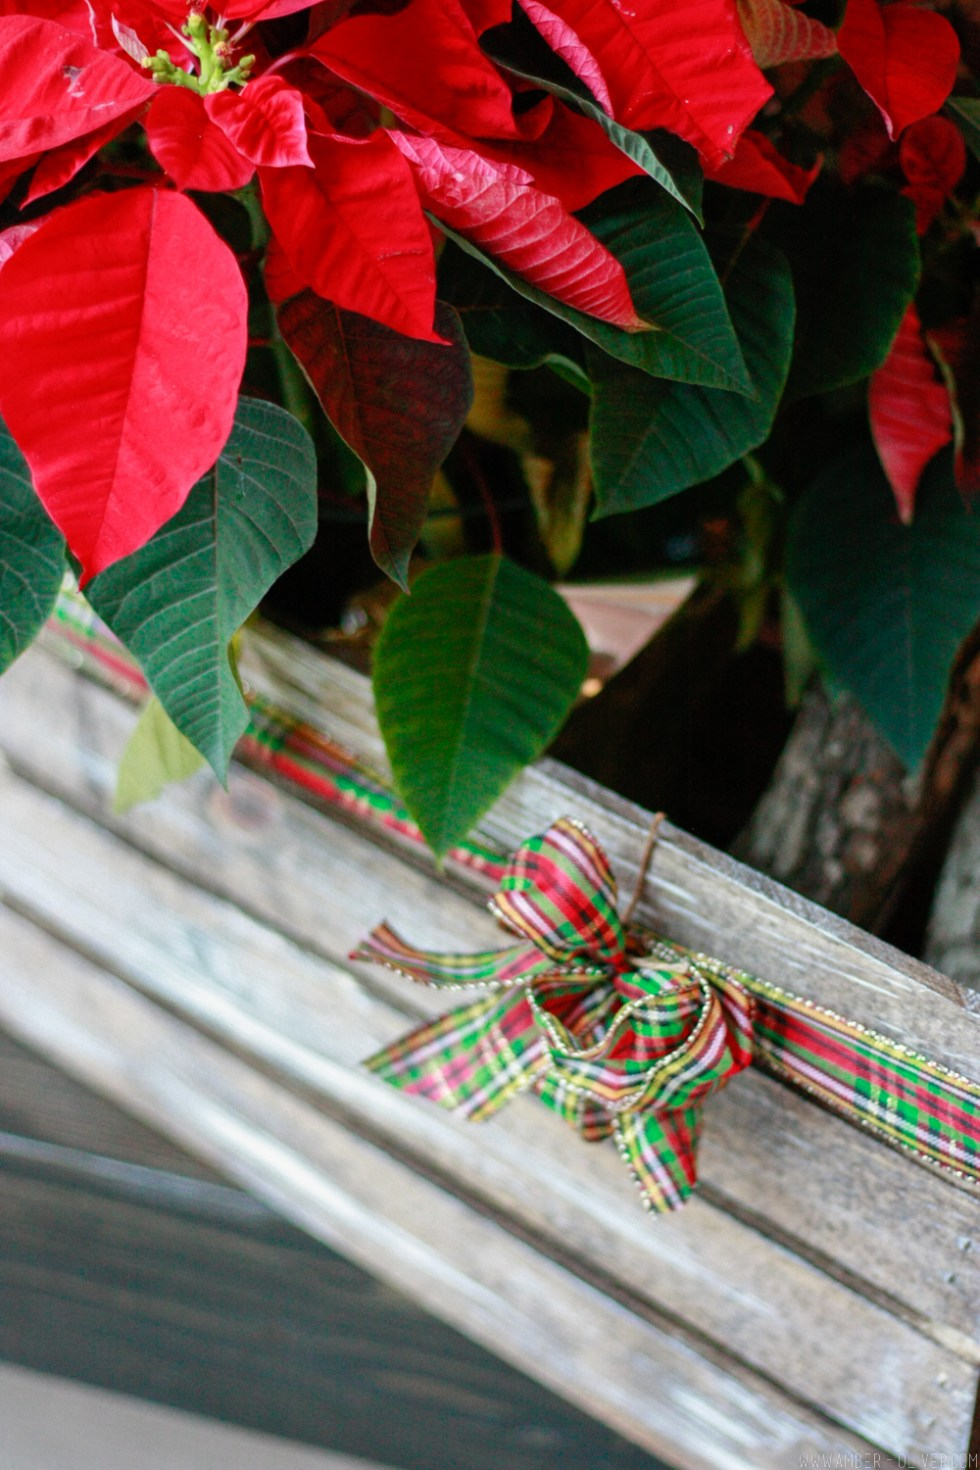 DIY Christmas crate - how to create weather and distressed wood